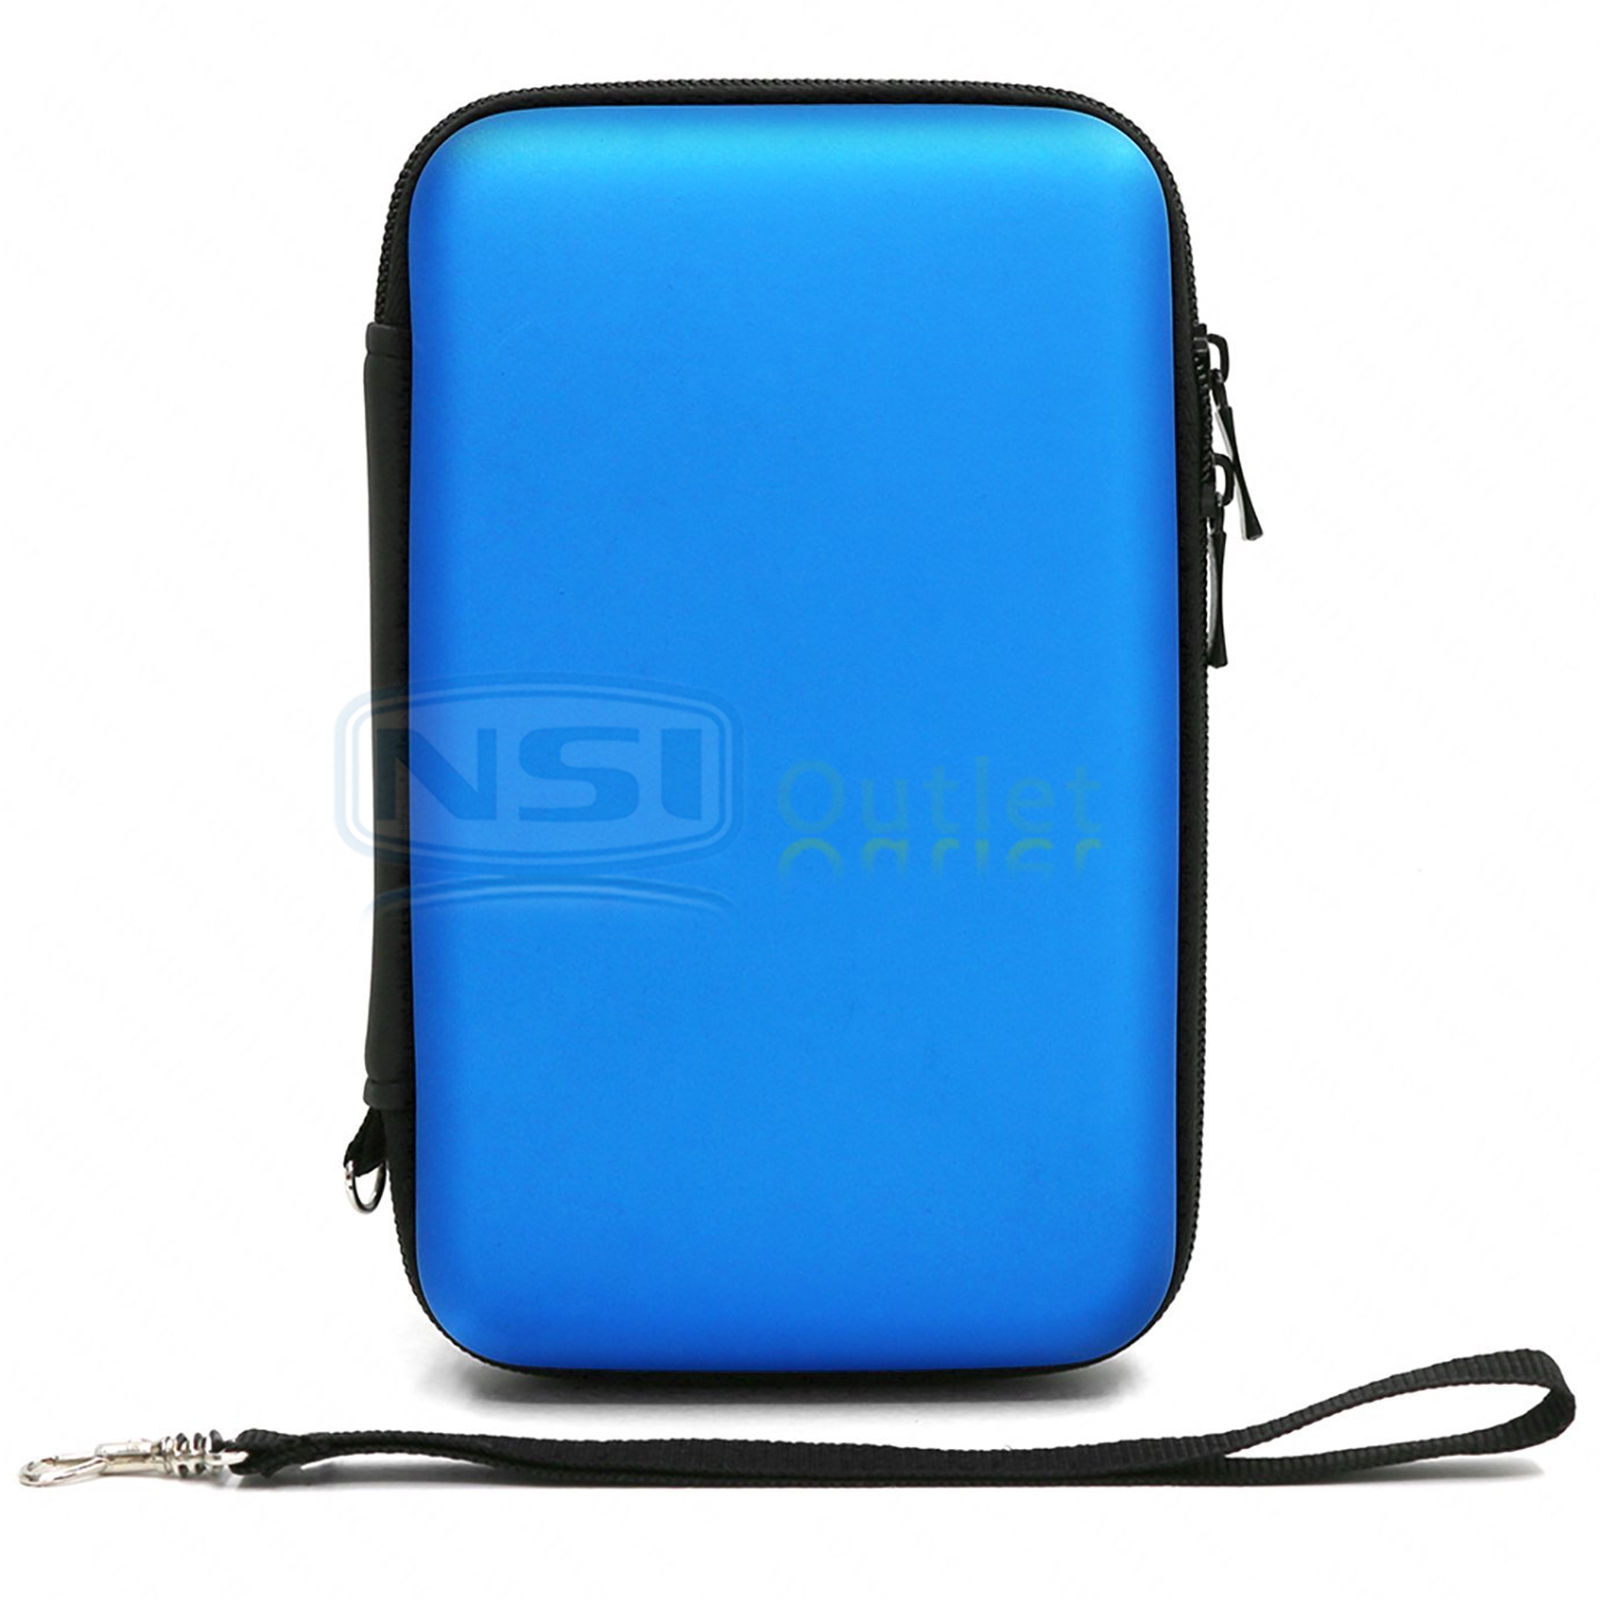 EVA-Hard-Protective-Carry-Case-Bag-Pouch-For-New-Nintendo-3DS-XL-3DS-LL-3DS thumbnail 14